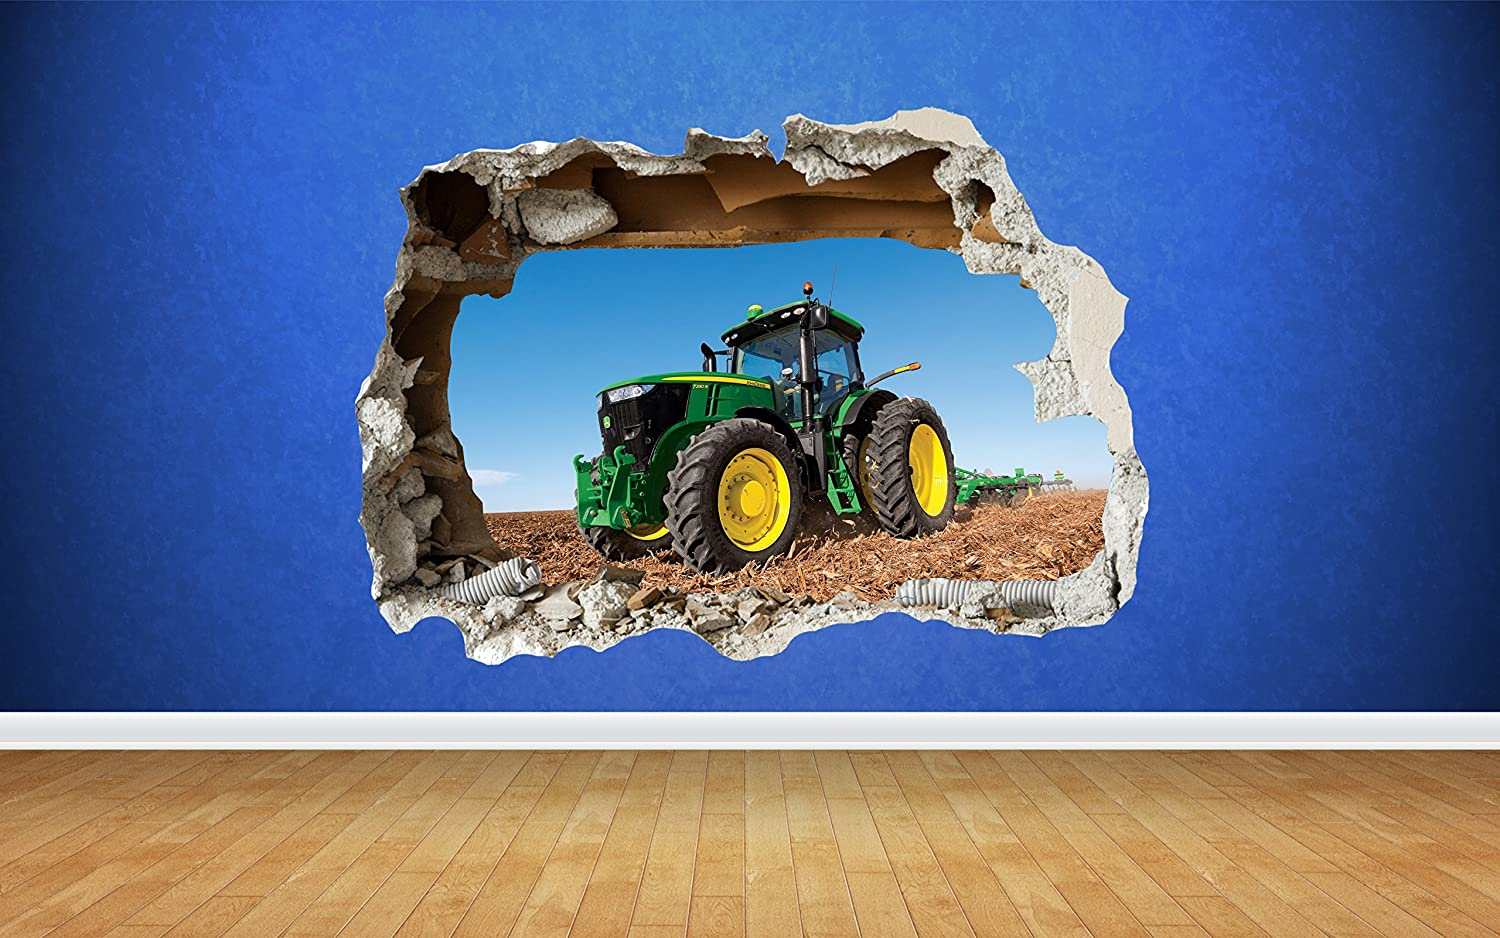 Thorpe Signs Tractor Farm Boys Bedroom Animals Country Smashed Wall Decal 3D Art Stickers (Large: 82cm x 58cm)